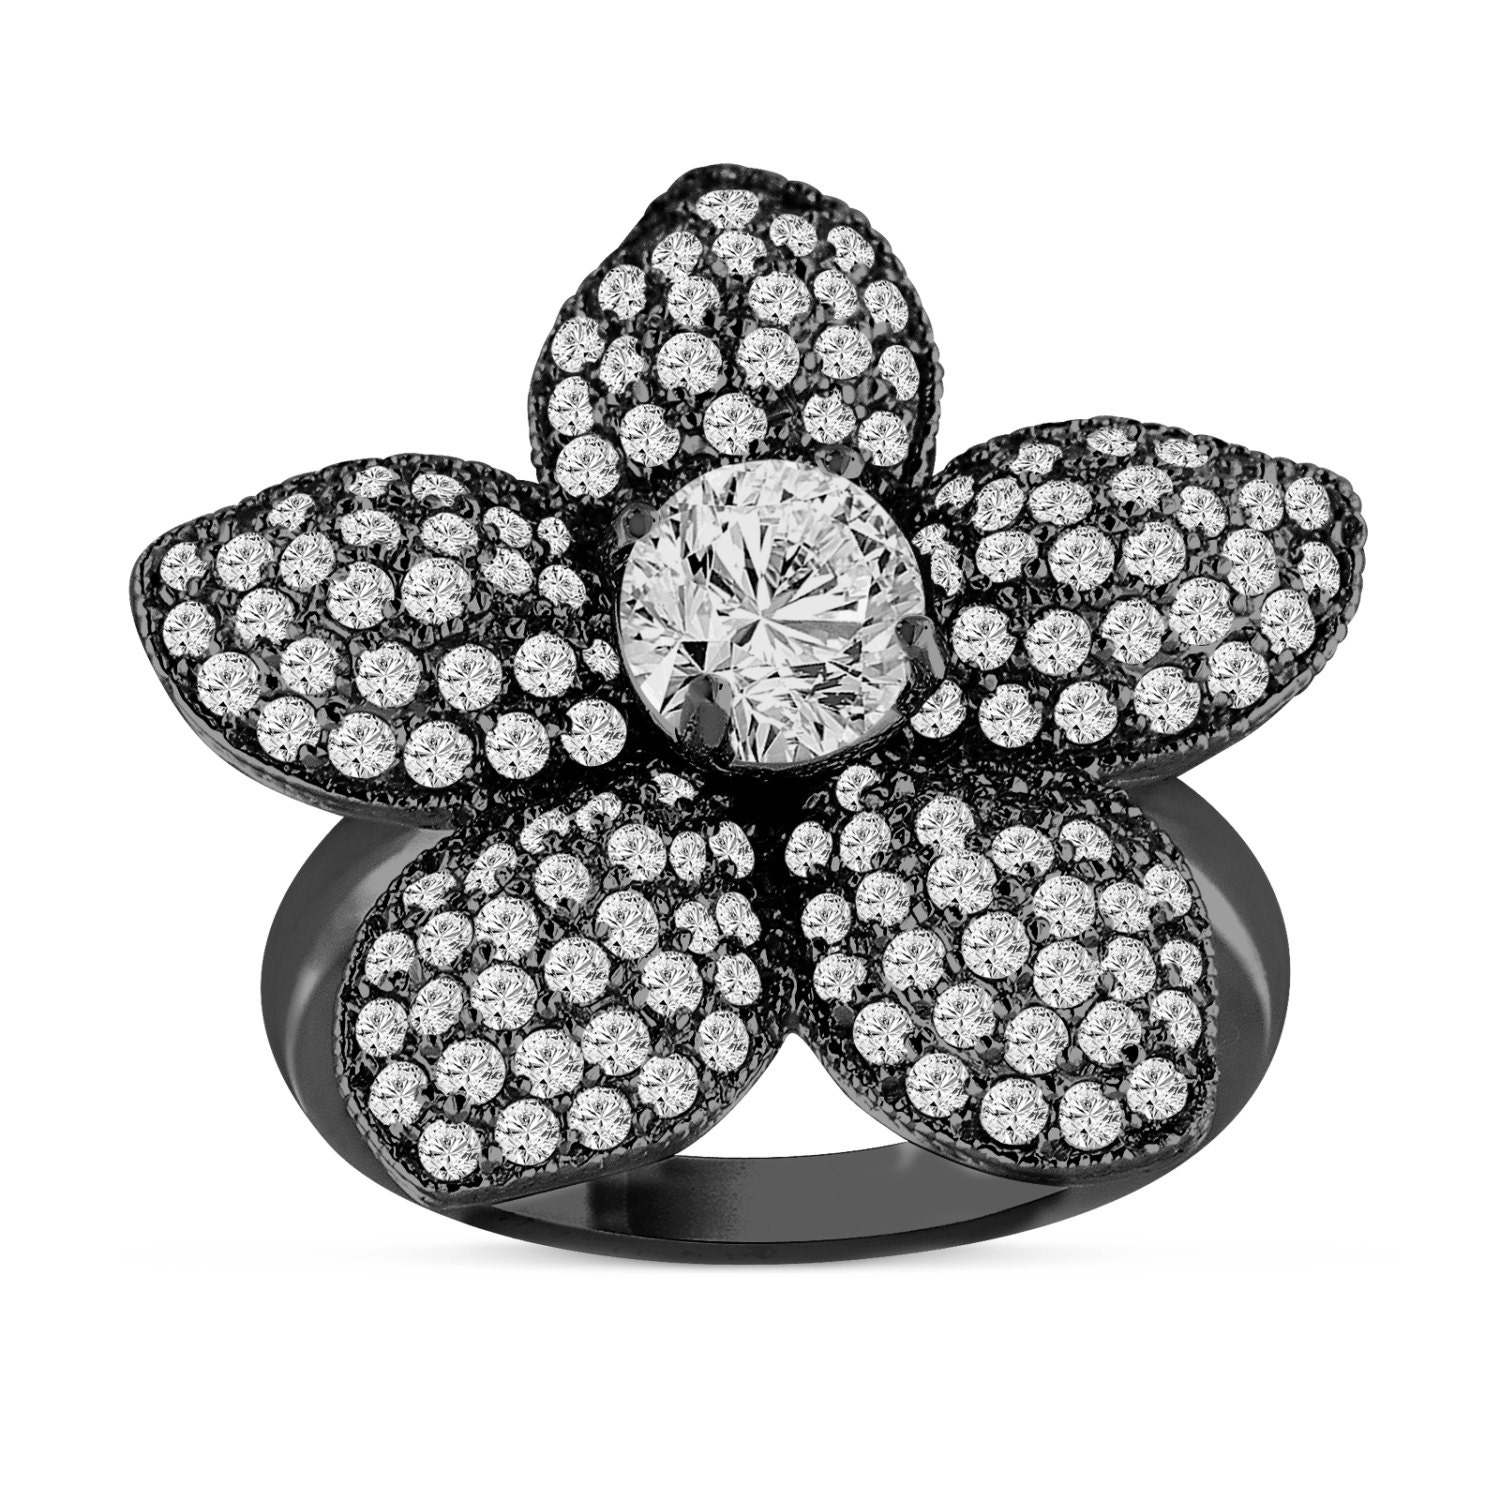 Flower Diamond Engagement Ring 2 65 Carat 14K Black Gold